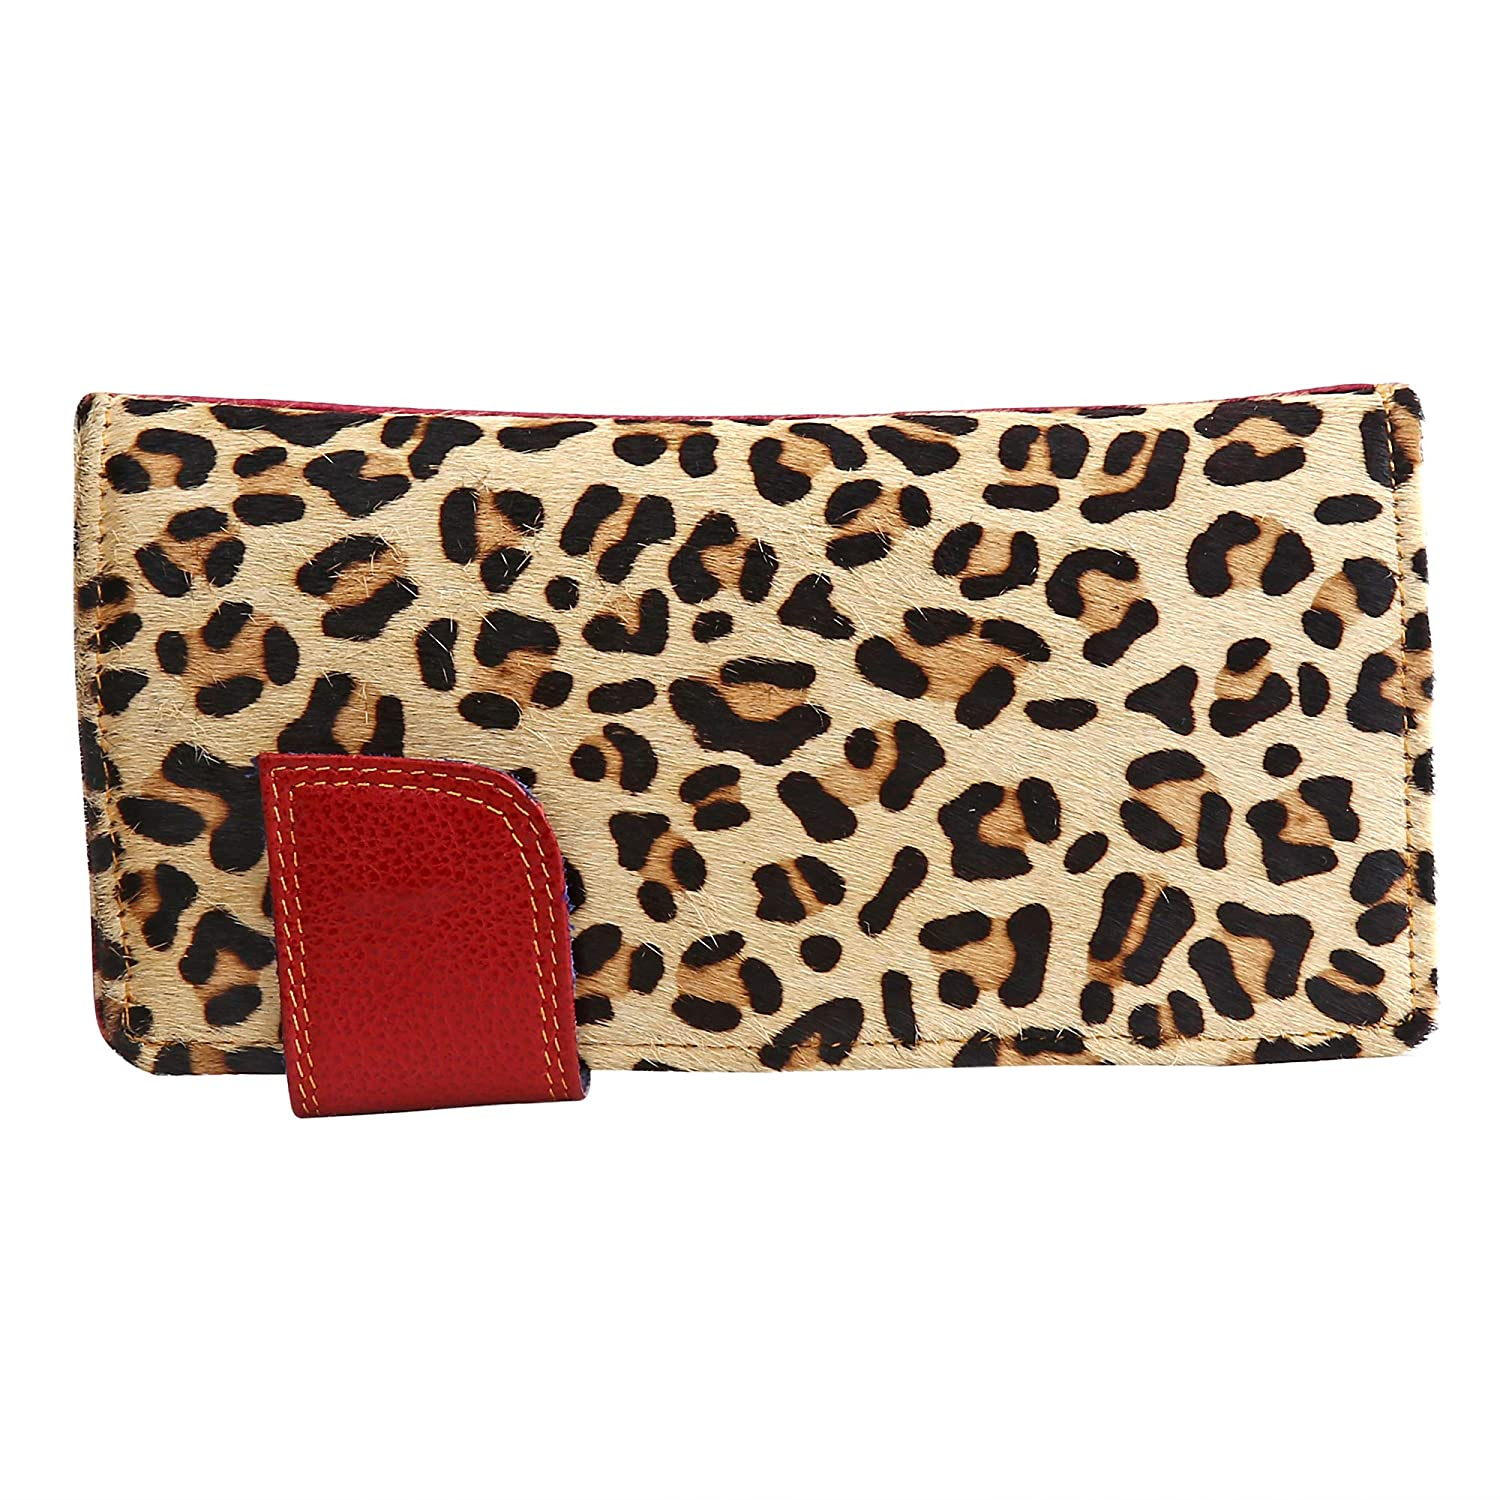 Leather Purses Clutch Phone Wallets Card Slots Animal Print Women